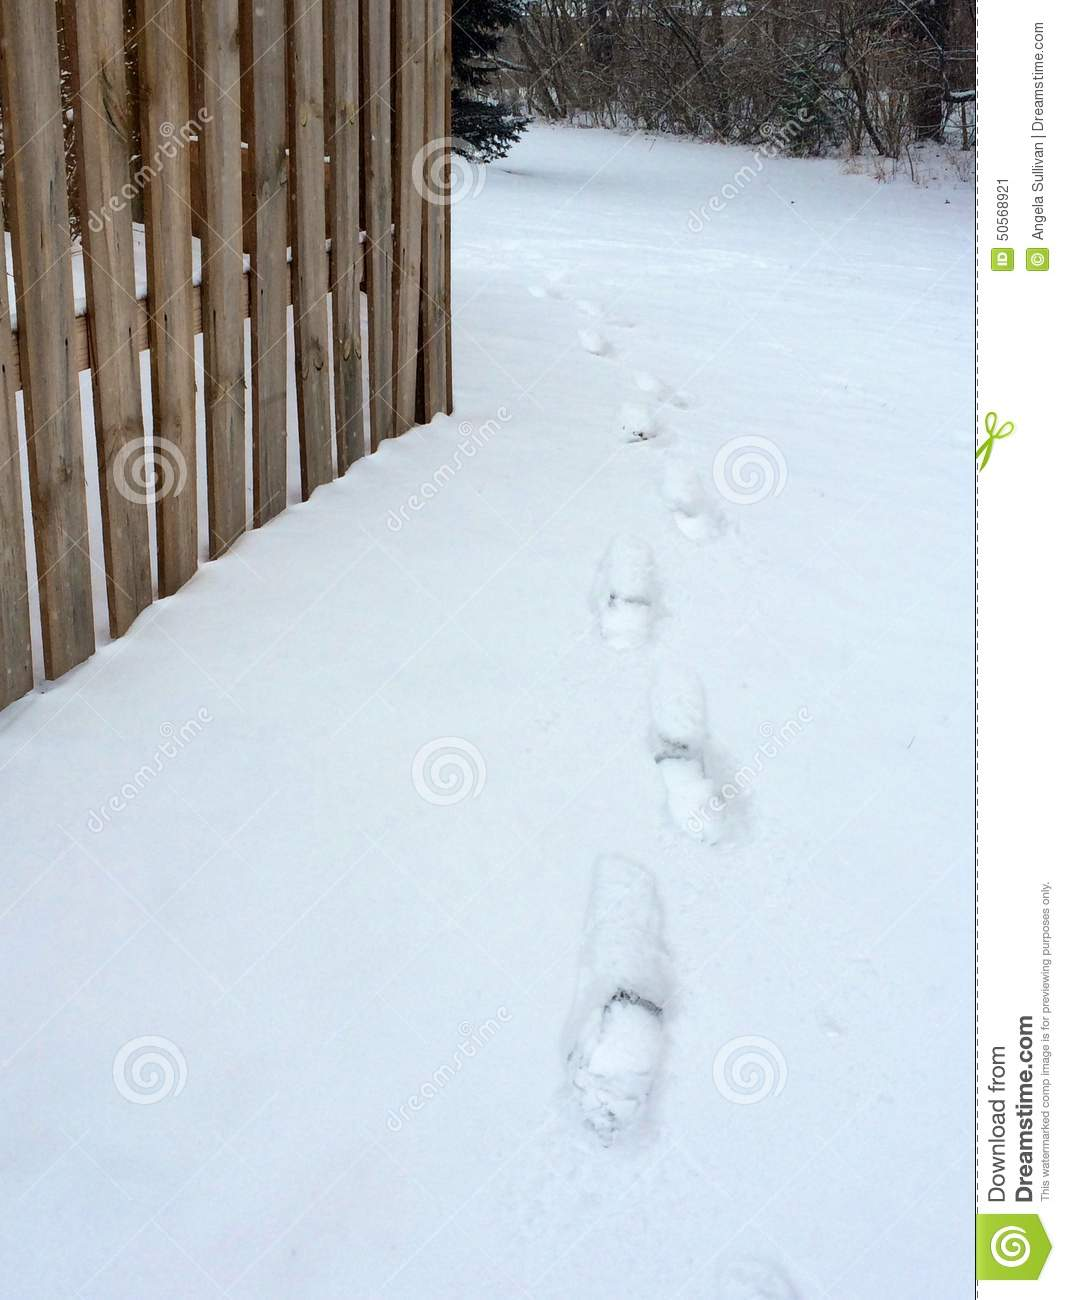 footprints in heavy snow next to fence stock image image 50568921